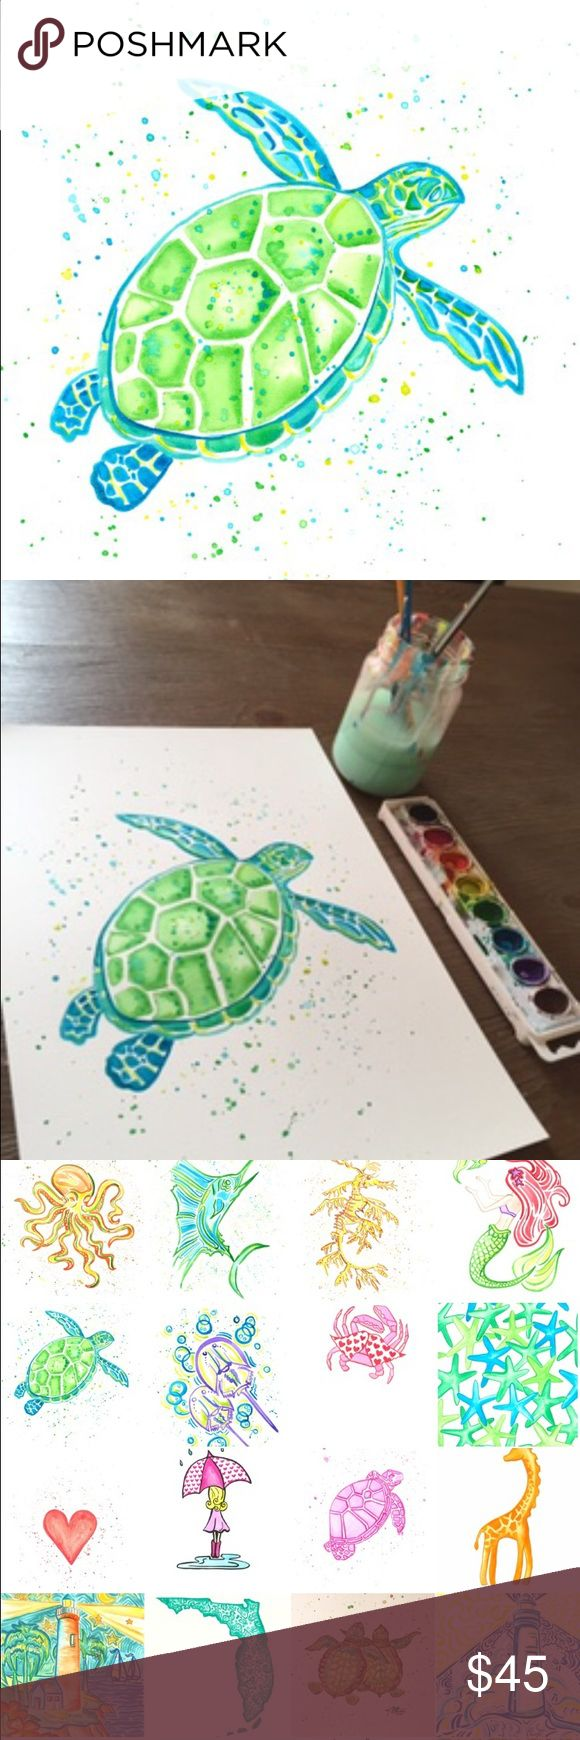 FLASH SALE! Sea Turtle Watercolor Print - 8x10 This Week ONLY ! Vibrant green sea turtle print. Part of the Go Coastal Studios sea life series in Palm Beach. (Listed Lilly for exposure) This is a limited edition 8 x 10 watercolor print comes ready to frame.  You will love this gorgeous artwork for yourself or a gift to a friend! Lilly Pulitzer Other